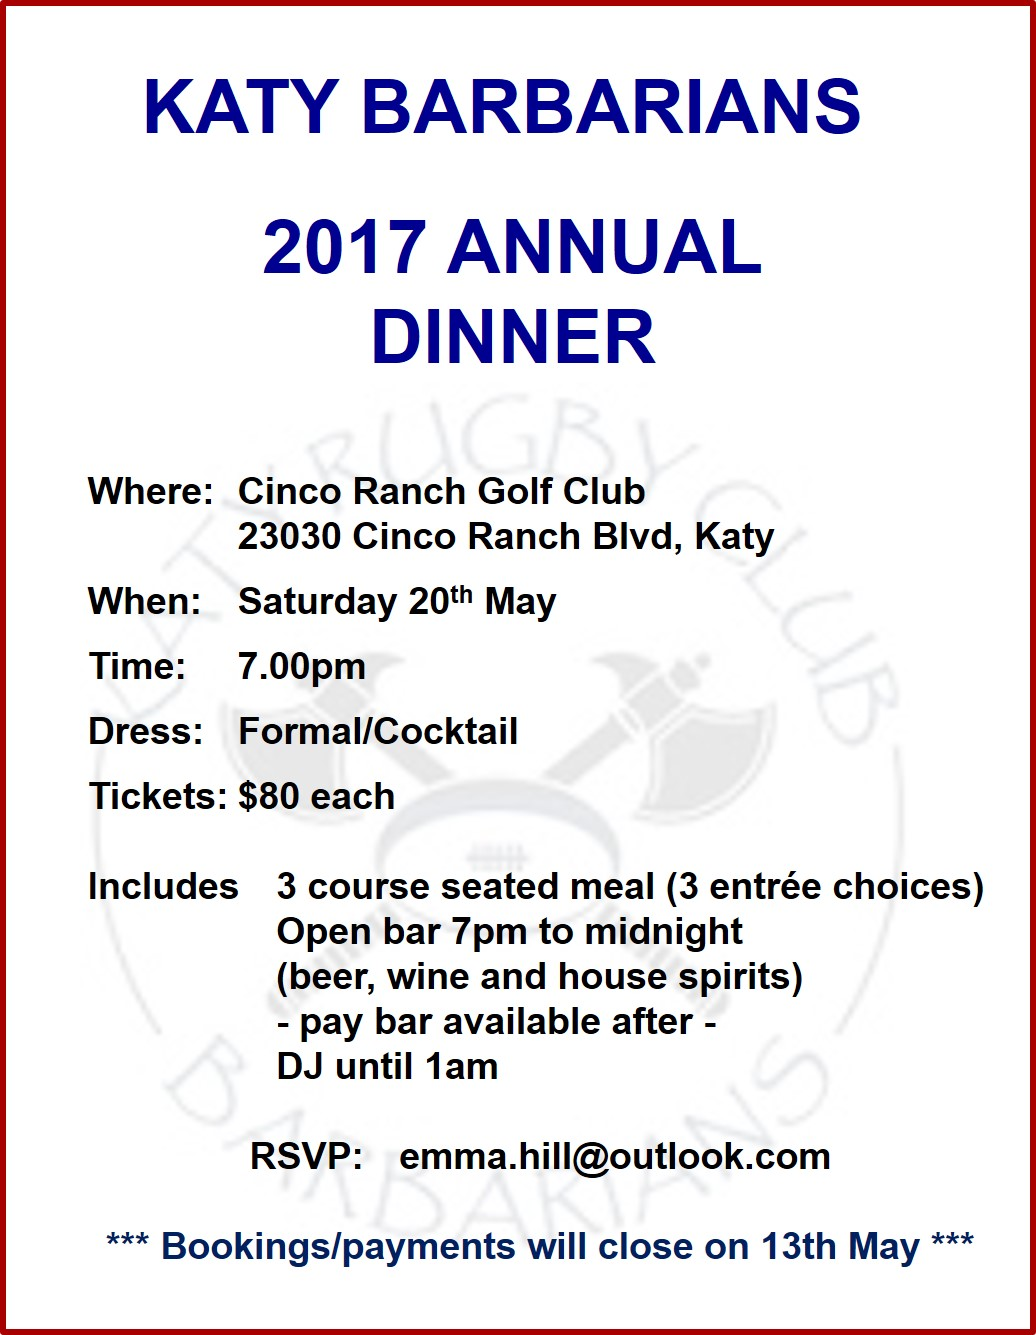 Templates 2017 formal dinner invitation details stopboris Image collections